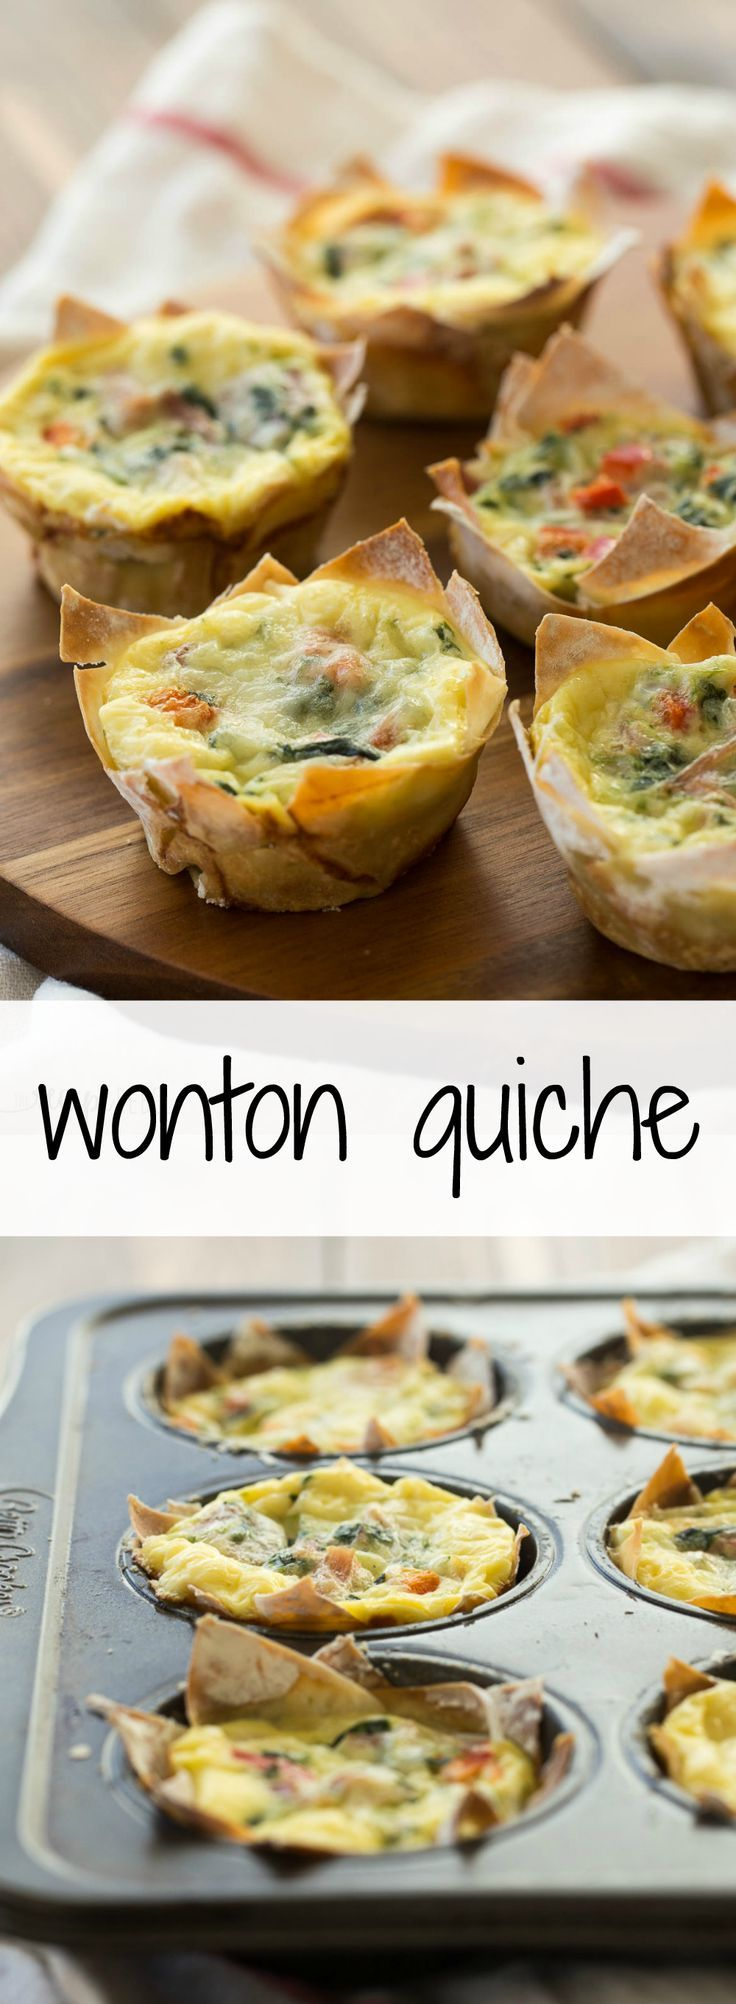 an easy breakfast or lunch recipe that's good for you! Less than 100 calories per quiche